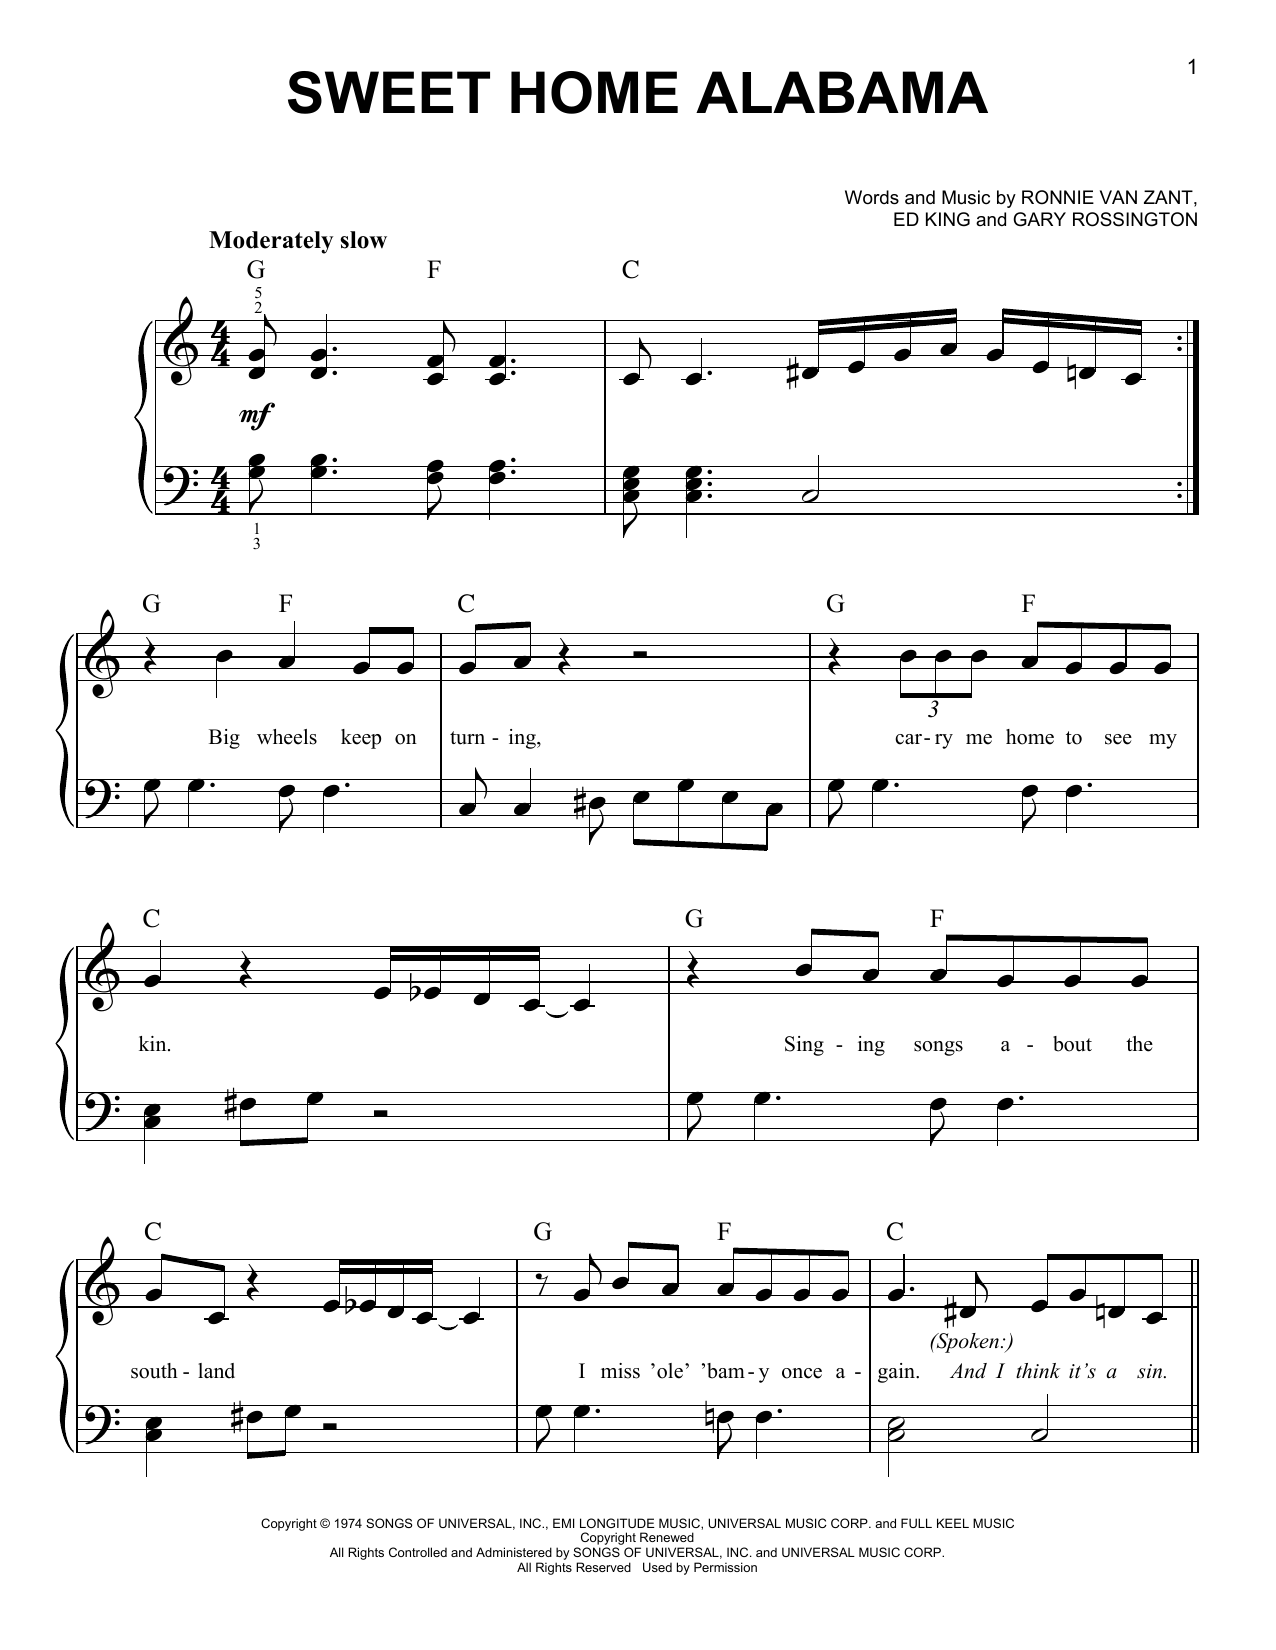 Sweet Home Alabama : Sheet Music Direct